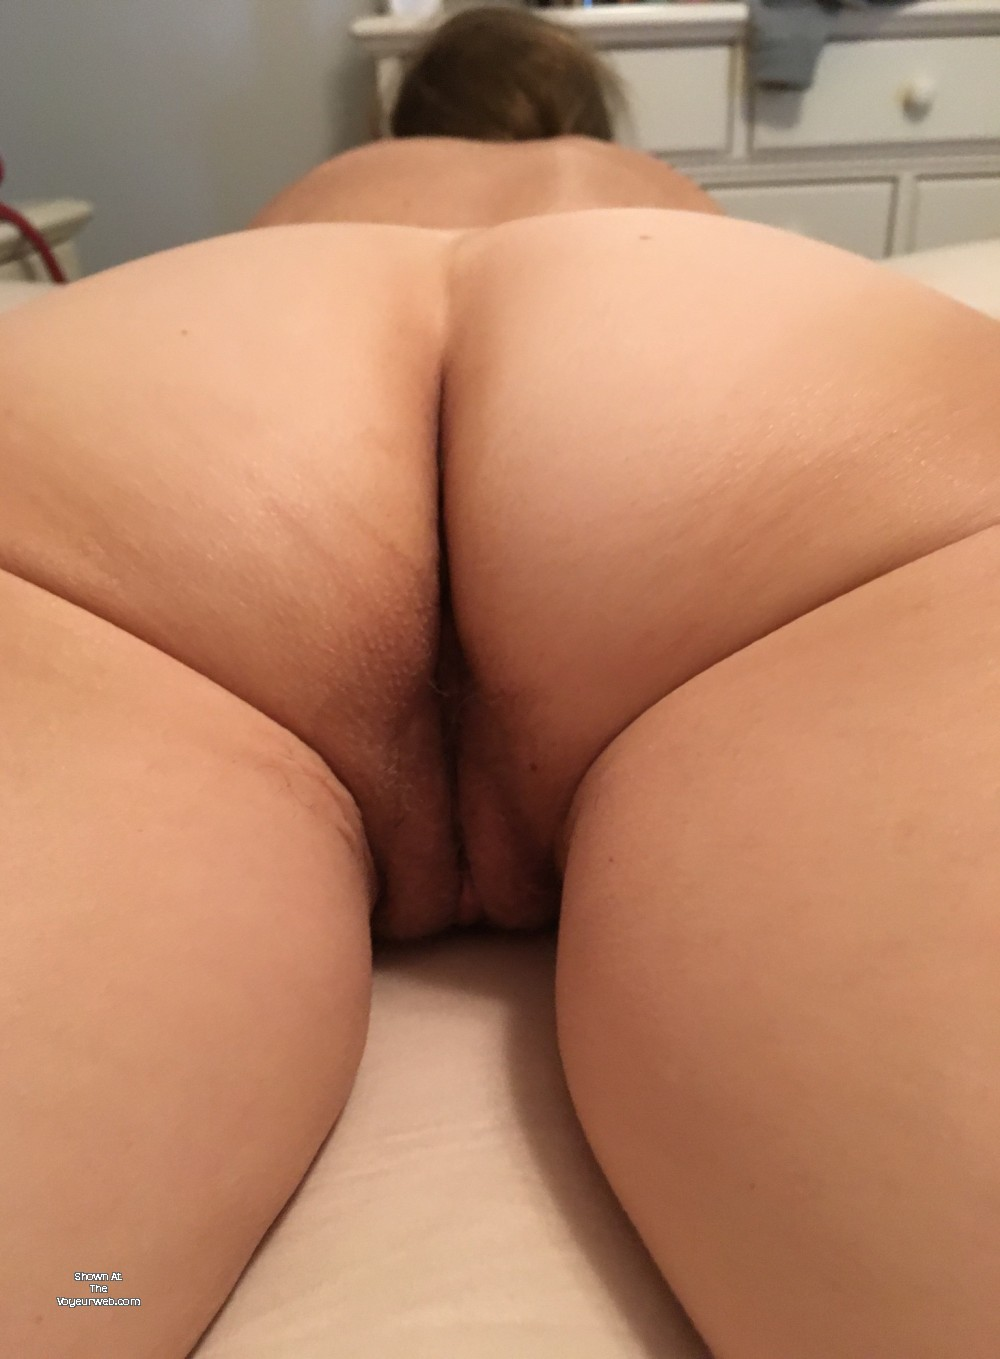 Pic #1My wife's ass - My Wife -50+